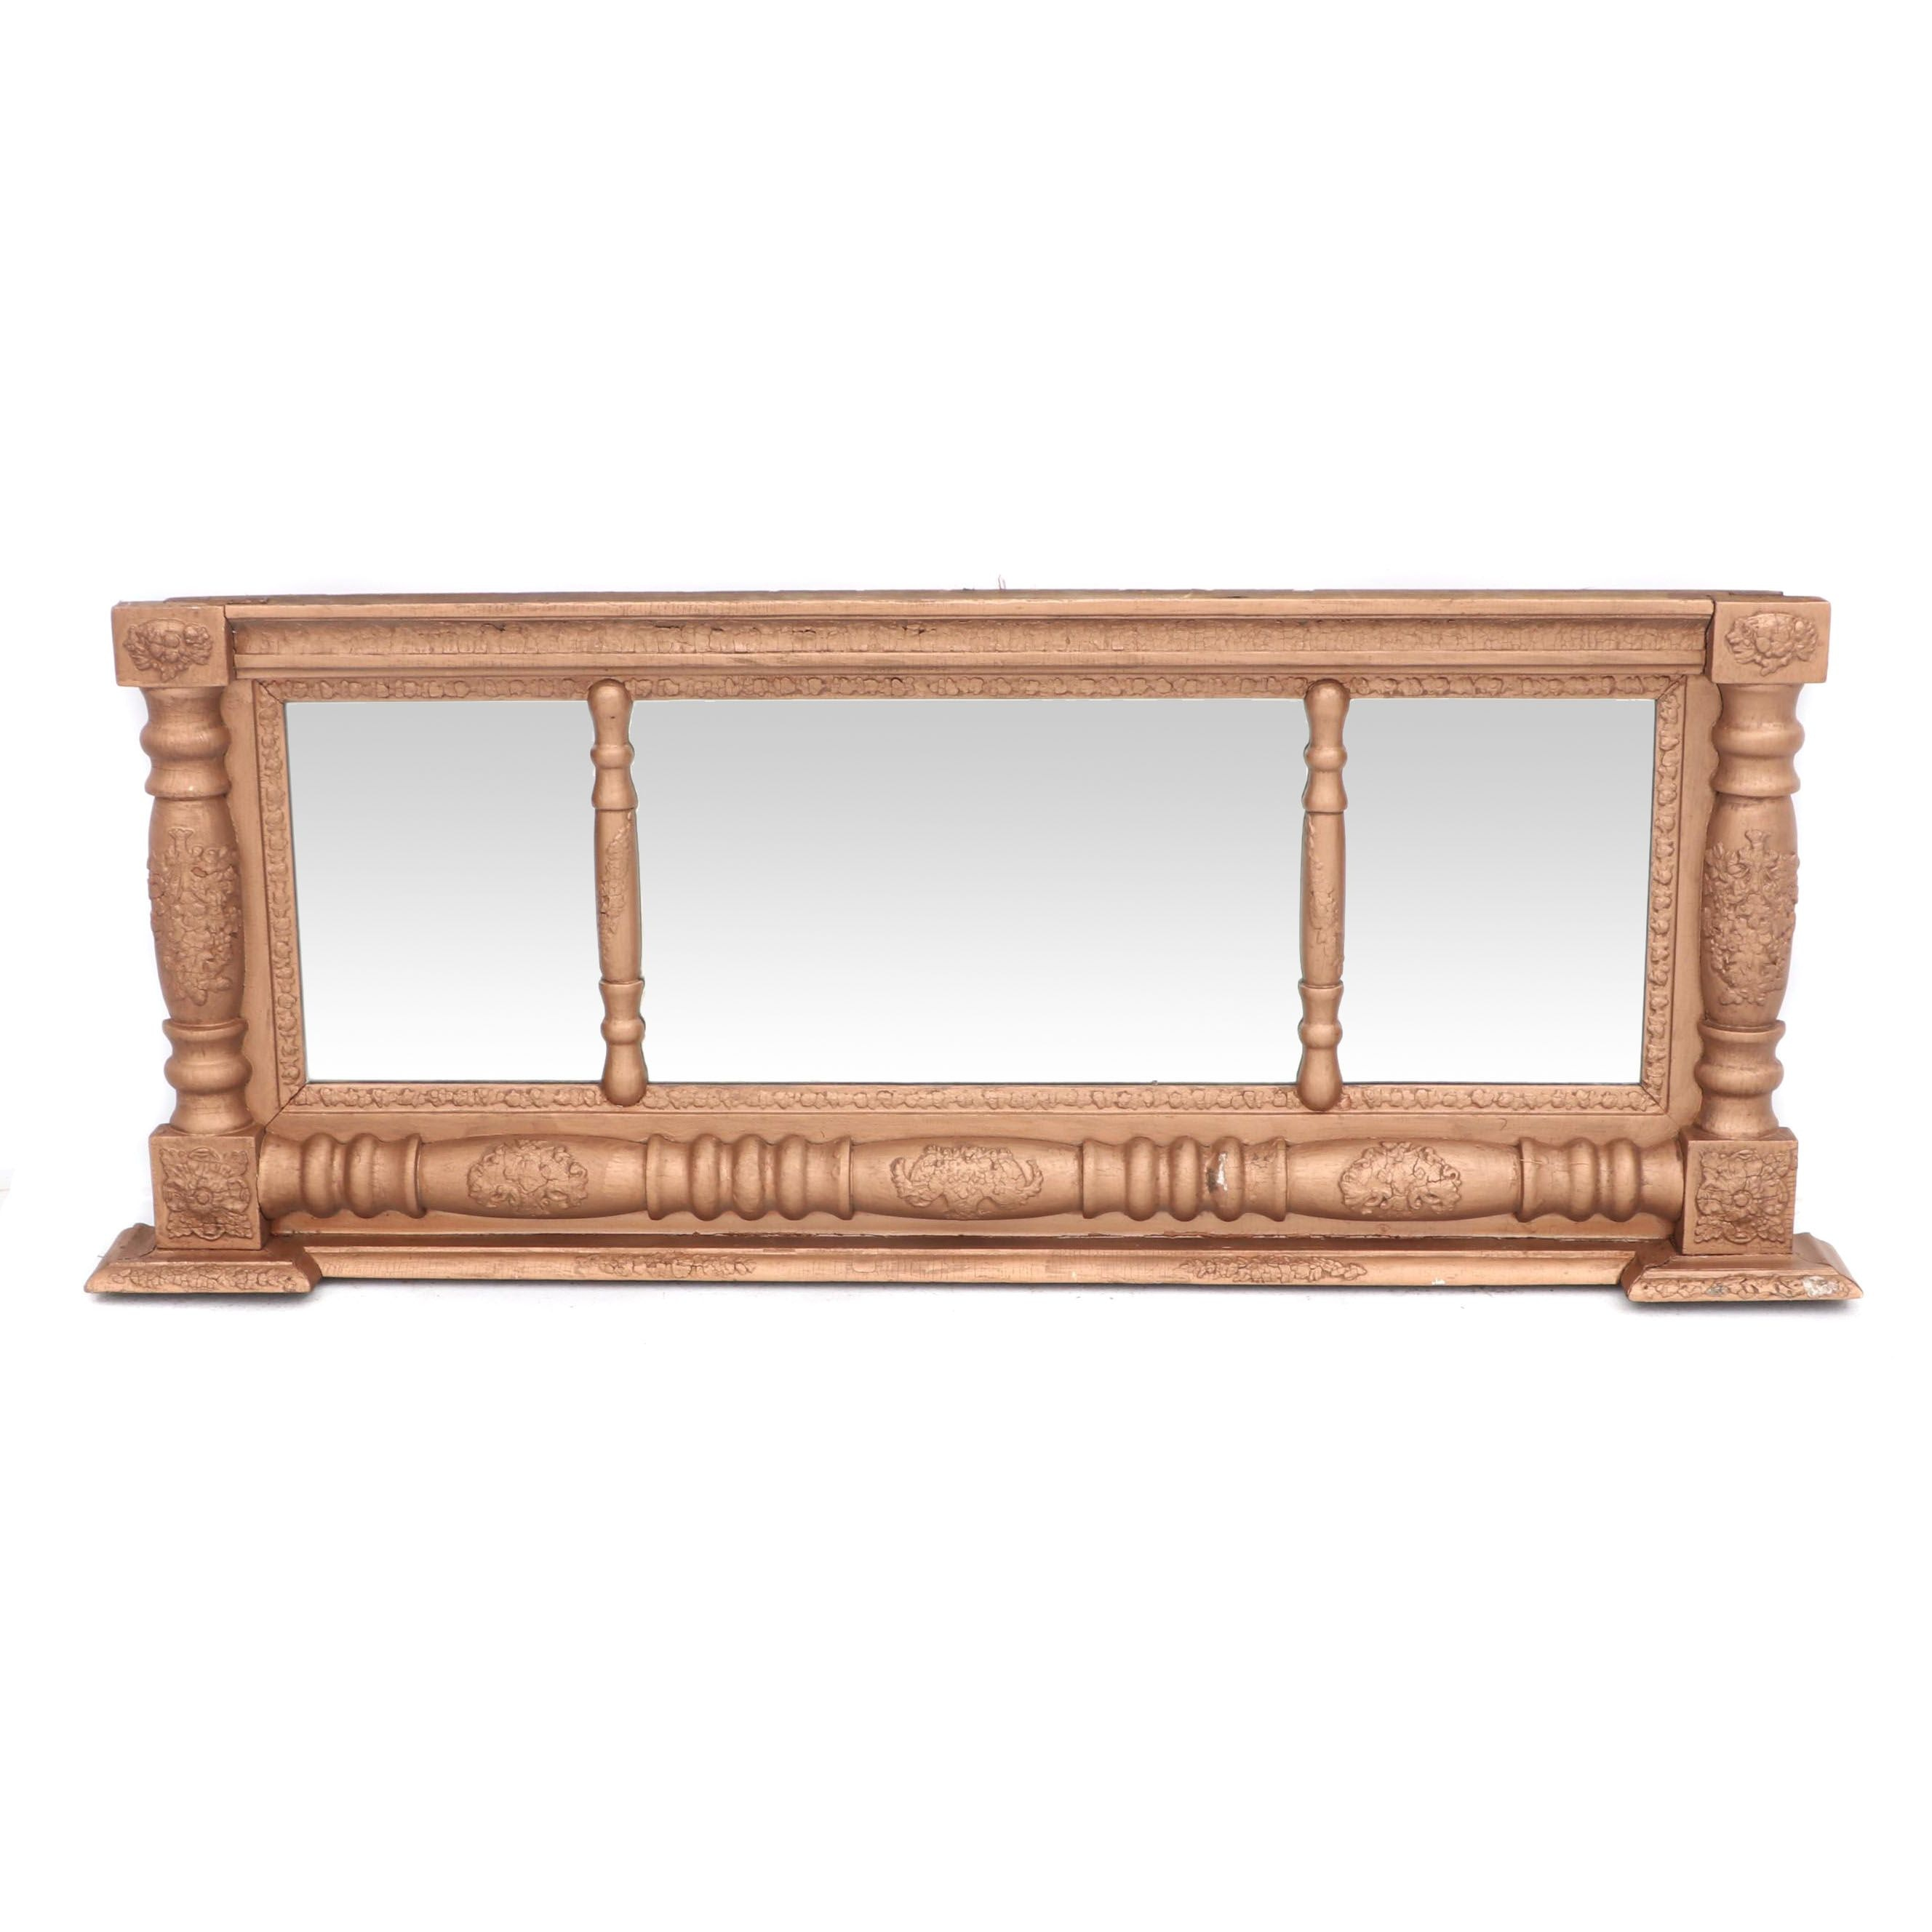 Federal Giltwood Mantel Mirror, Early 19th Century